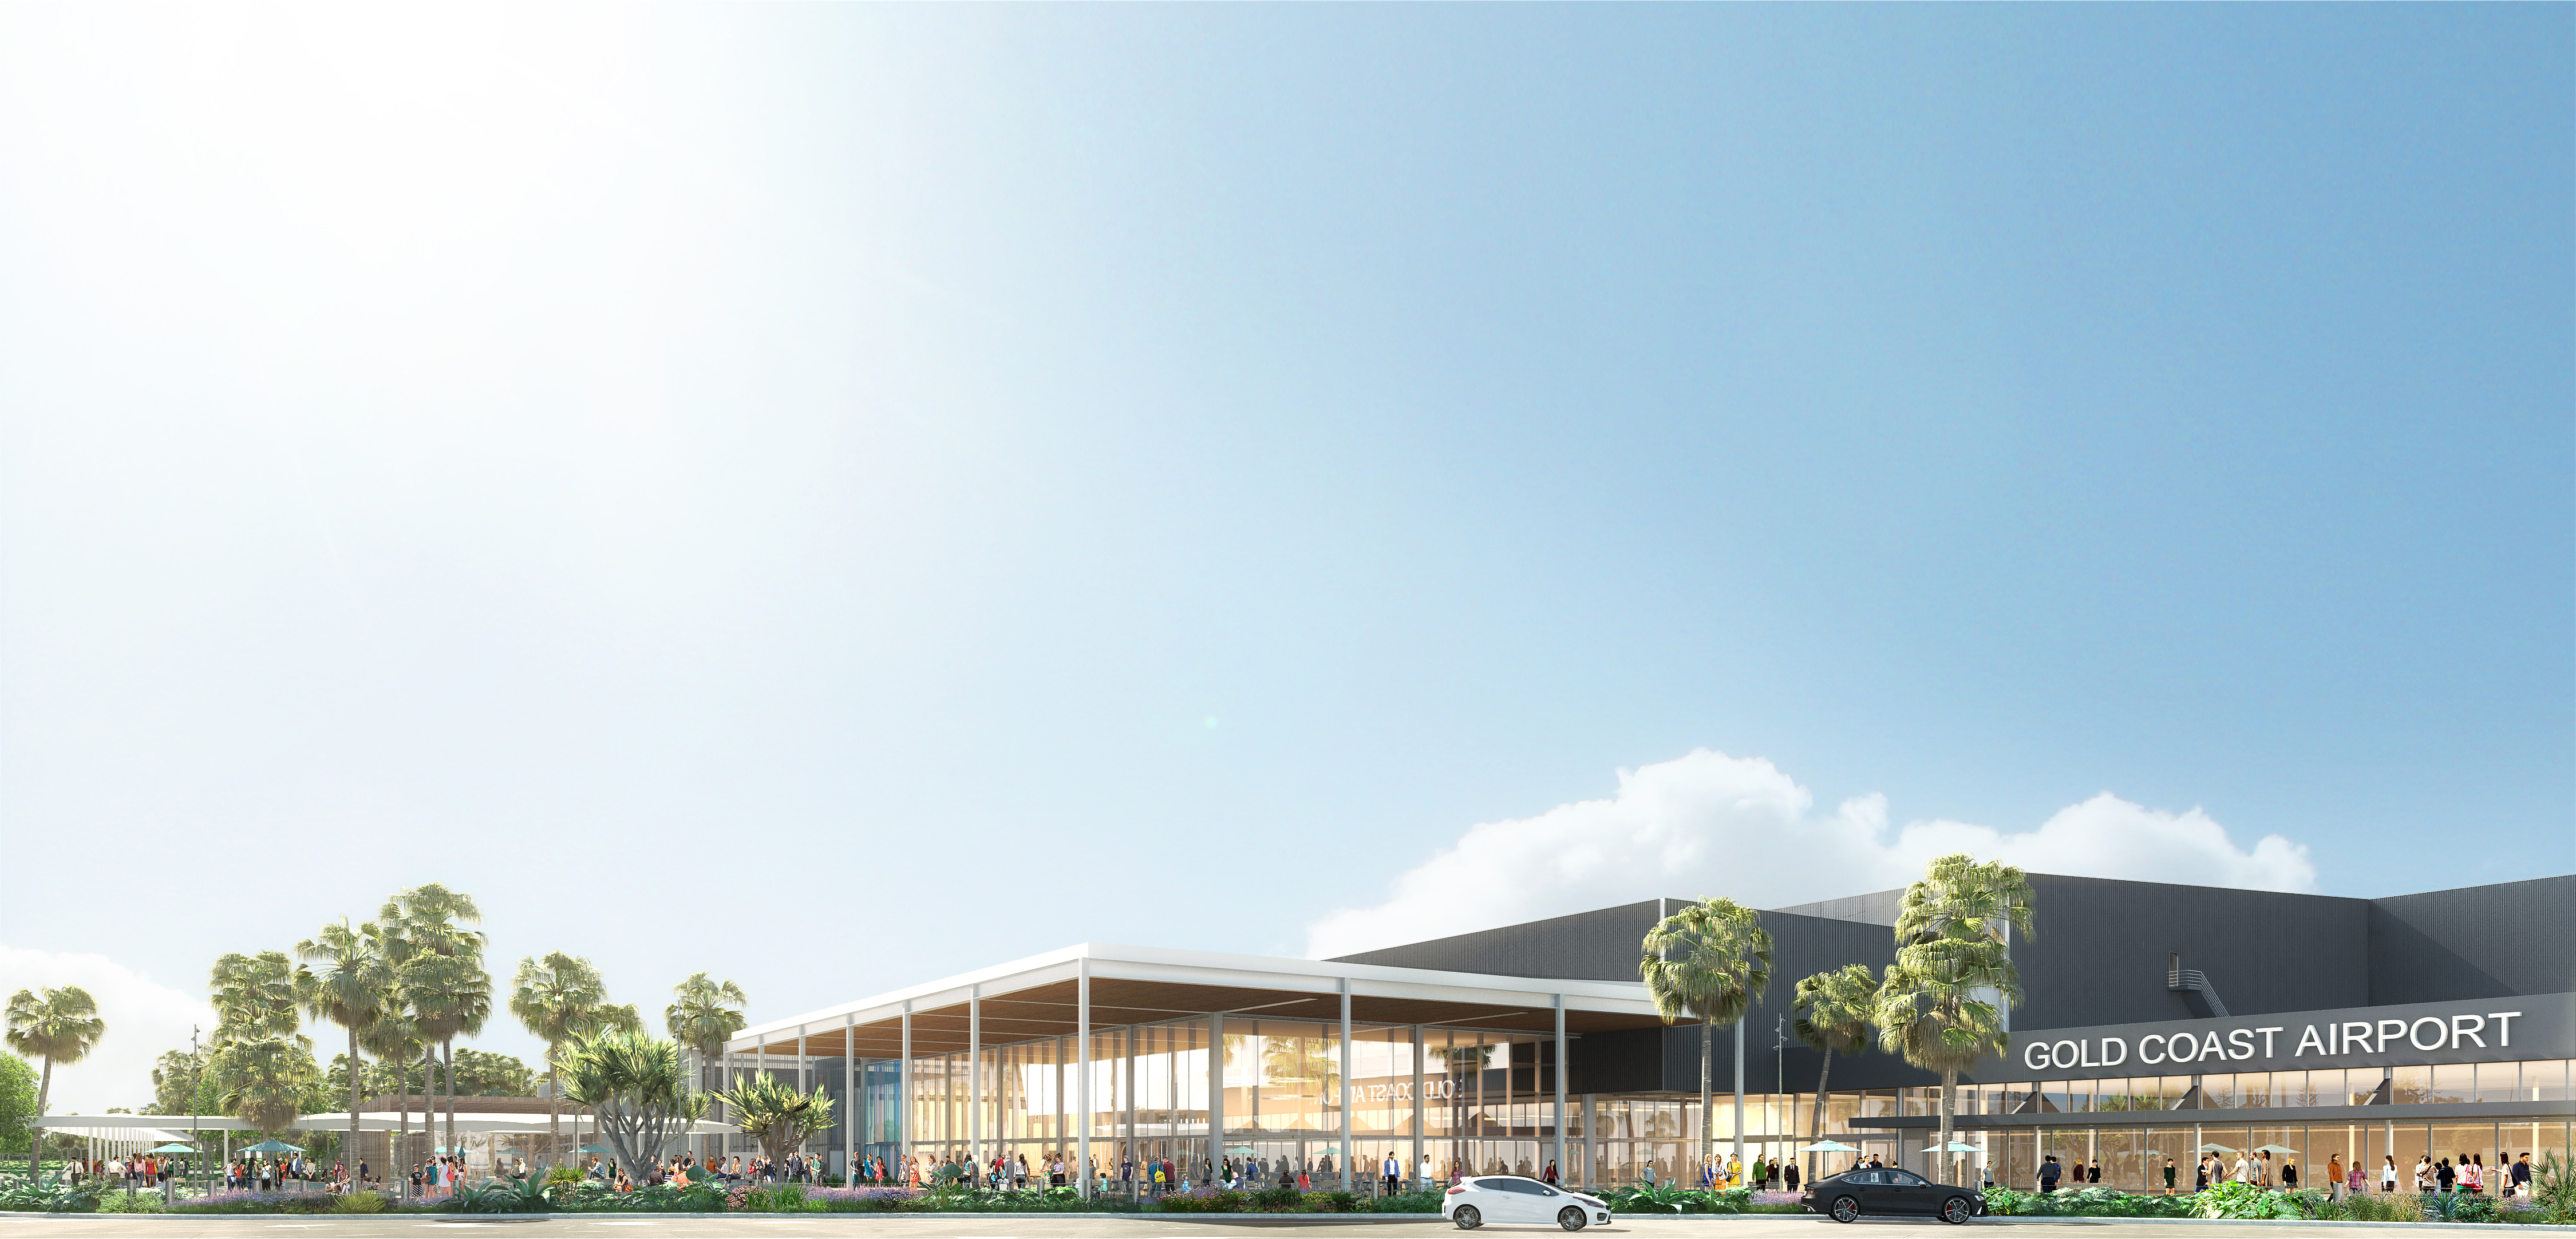 The Gold Coast airport southern terminal expansion. Rendering shows the new arrivals hall, forecourt areas and connection to the existing terminal.